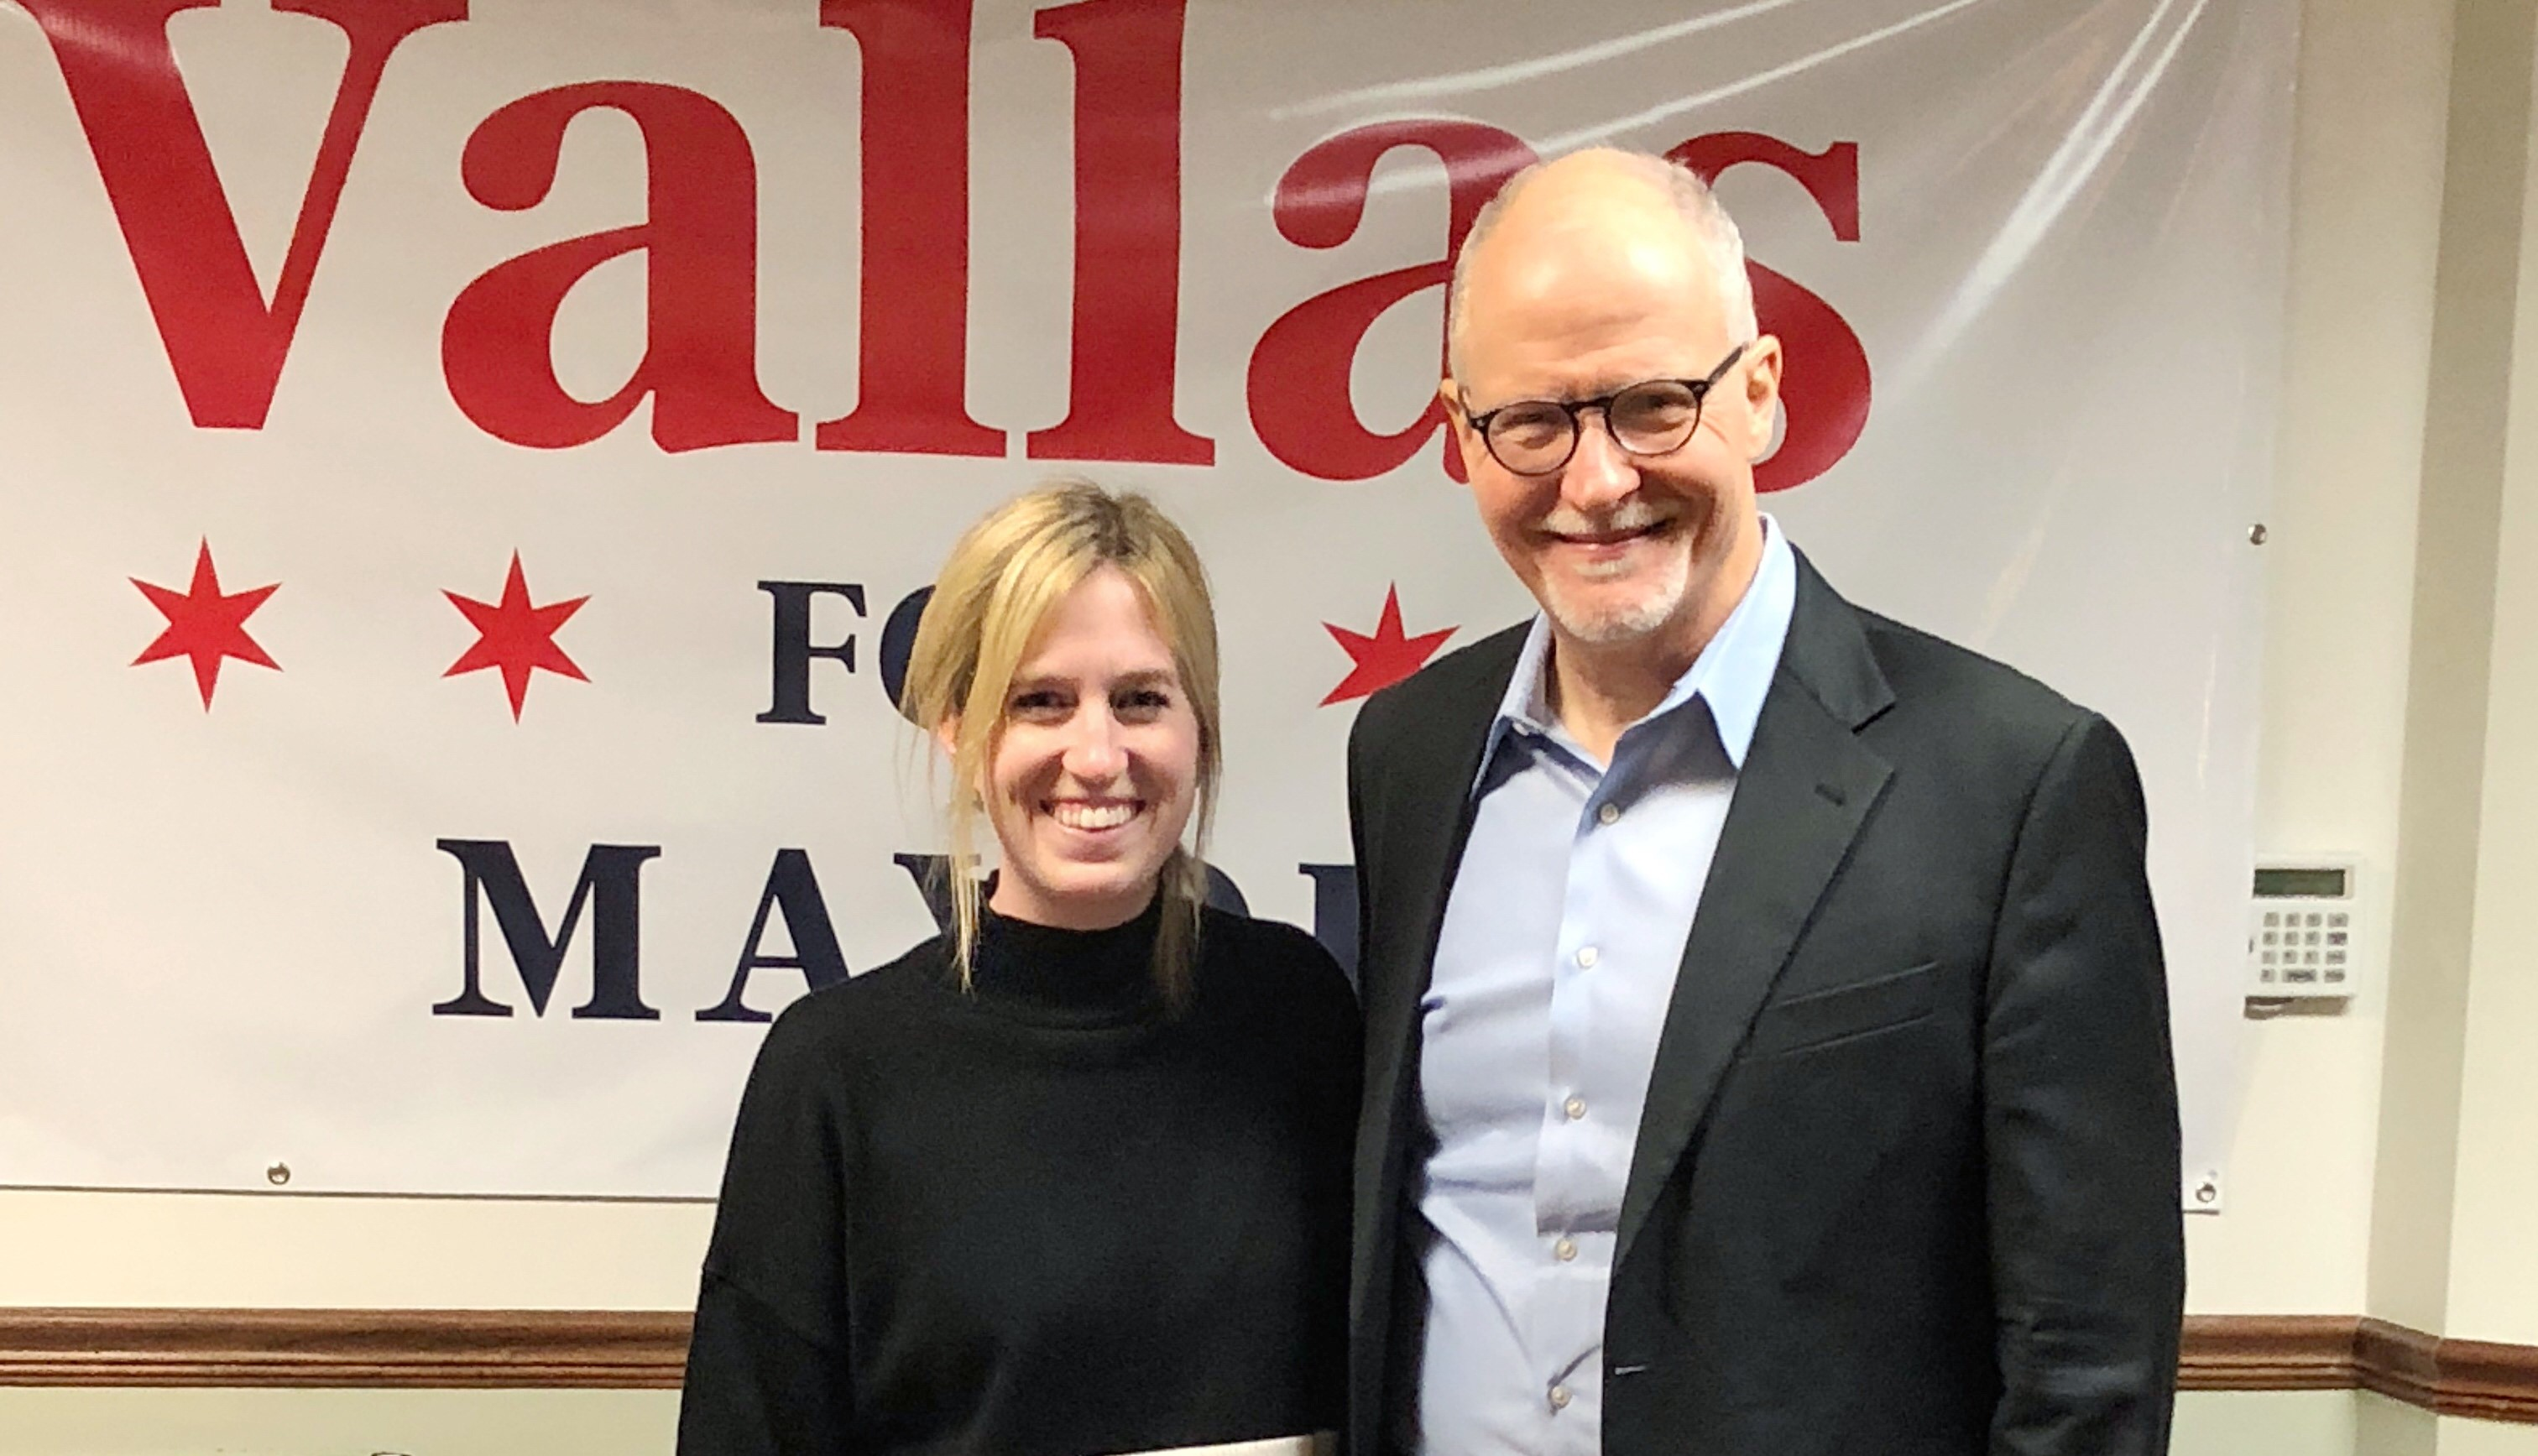 An interview with Mayoral candidate Paul Vallas